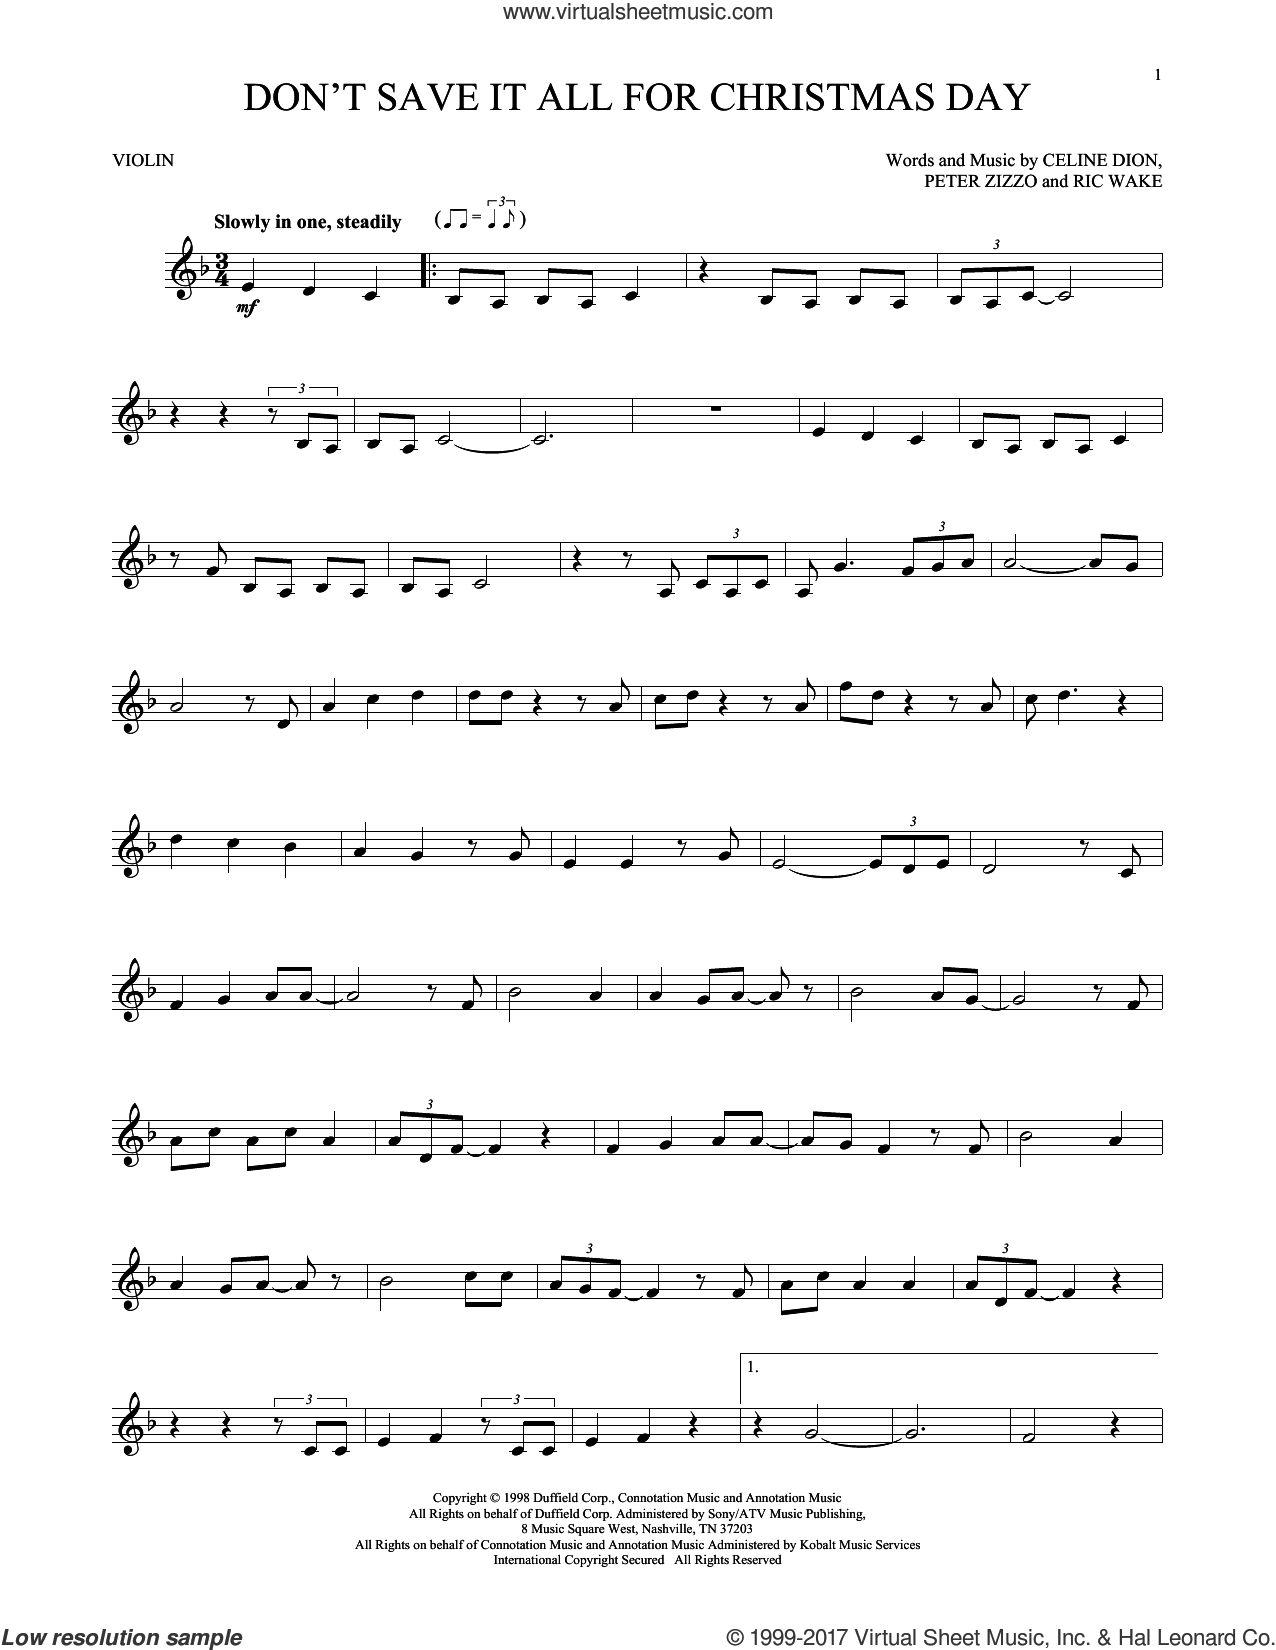 Don't Save It All For Christmas Day sheet music for violin solo by Celine Dion, Avalon, Peter Zizzo and Ric Wake, intermediate skill level